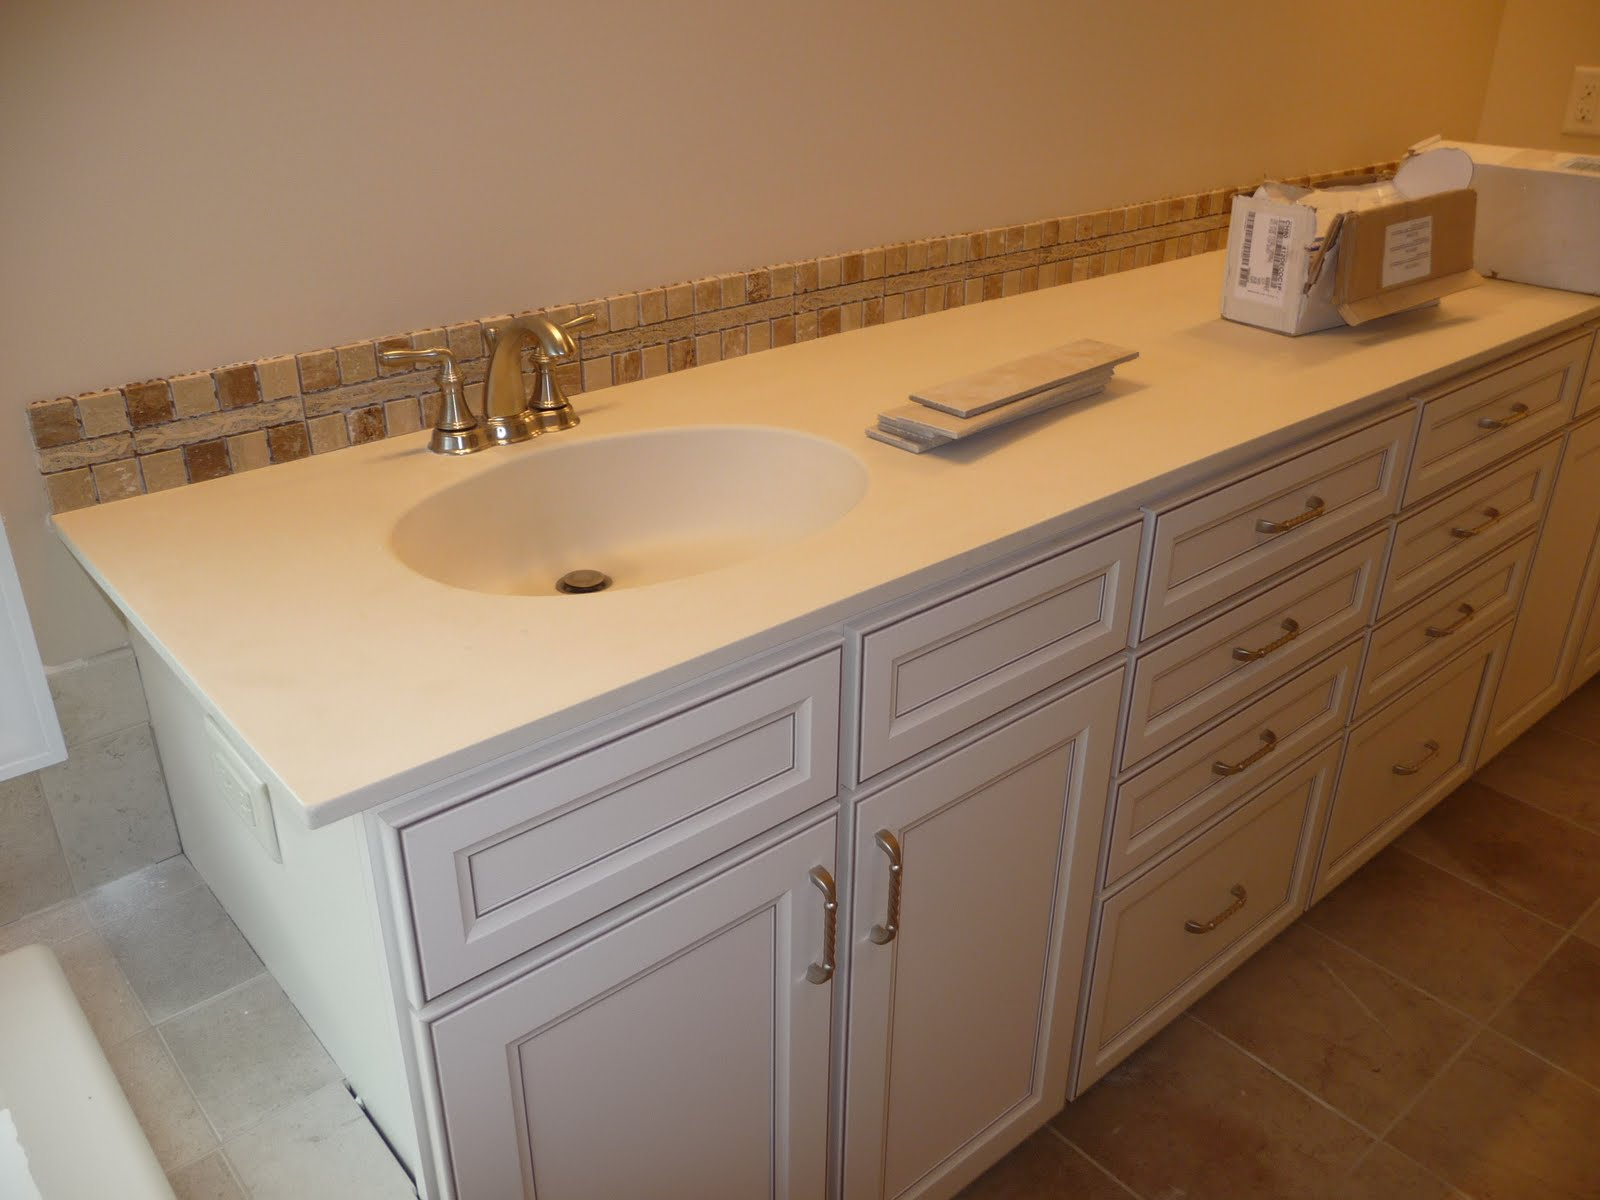 Moving on up to maple grove minnesota june 25th part 3 for Bathroom backsplash ideas